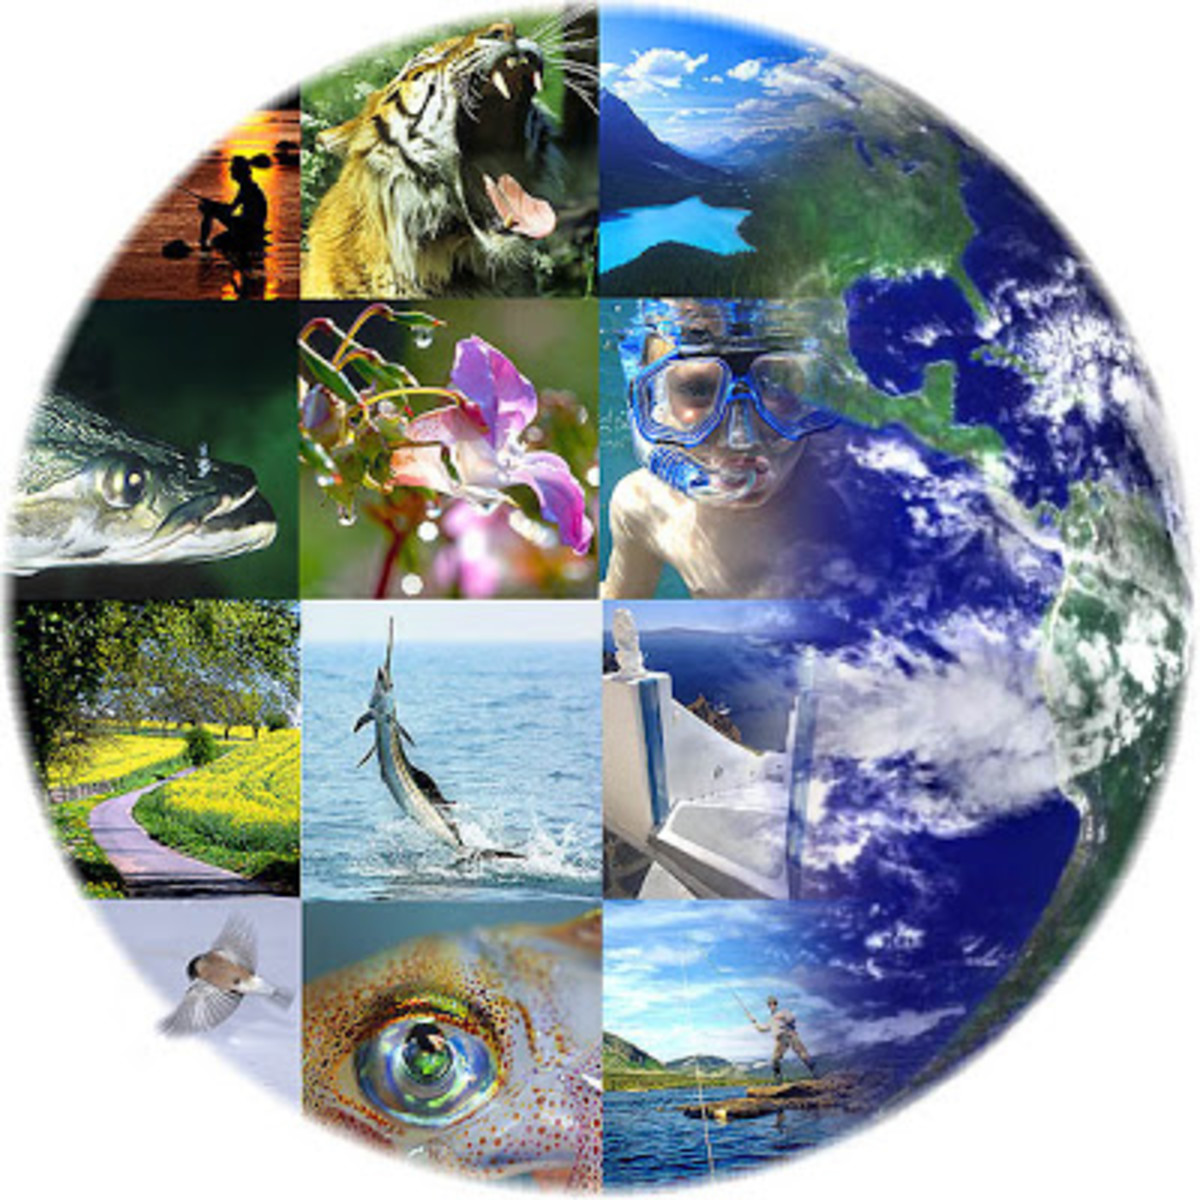 Species extinction and degradation of ecosystems are increasing due to climate change